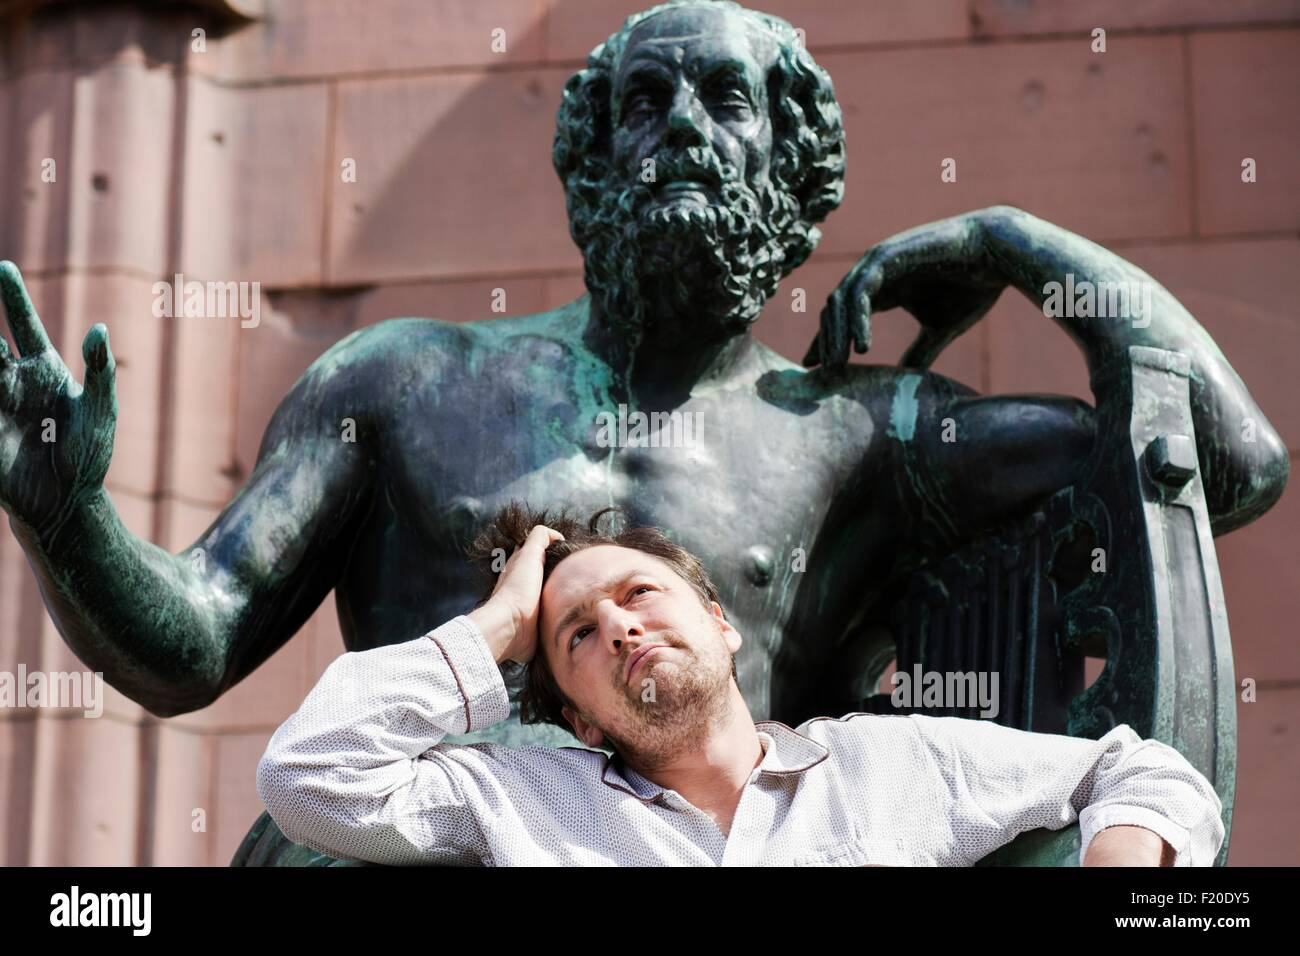 Portrait of mid adult man with hand in hair in front of sculpture, Freiburg, Baden, Germany - Stock Image